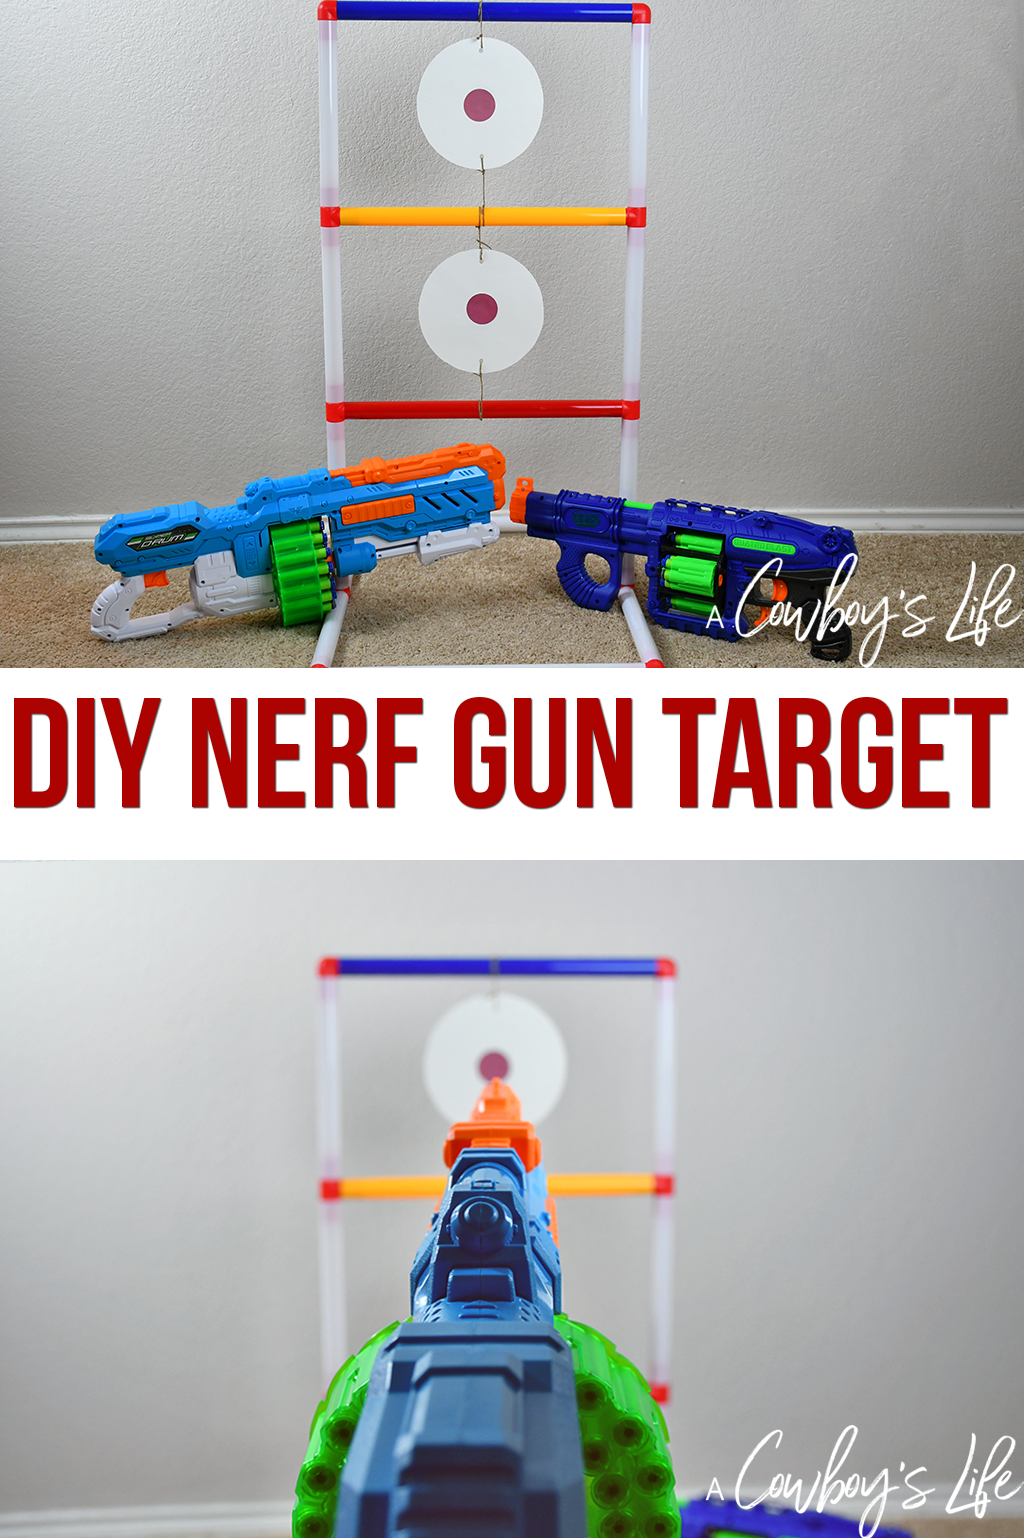 How to make a DIY Nerf gun target